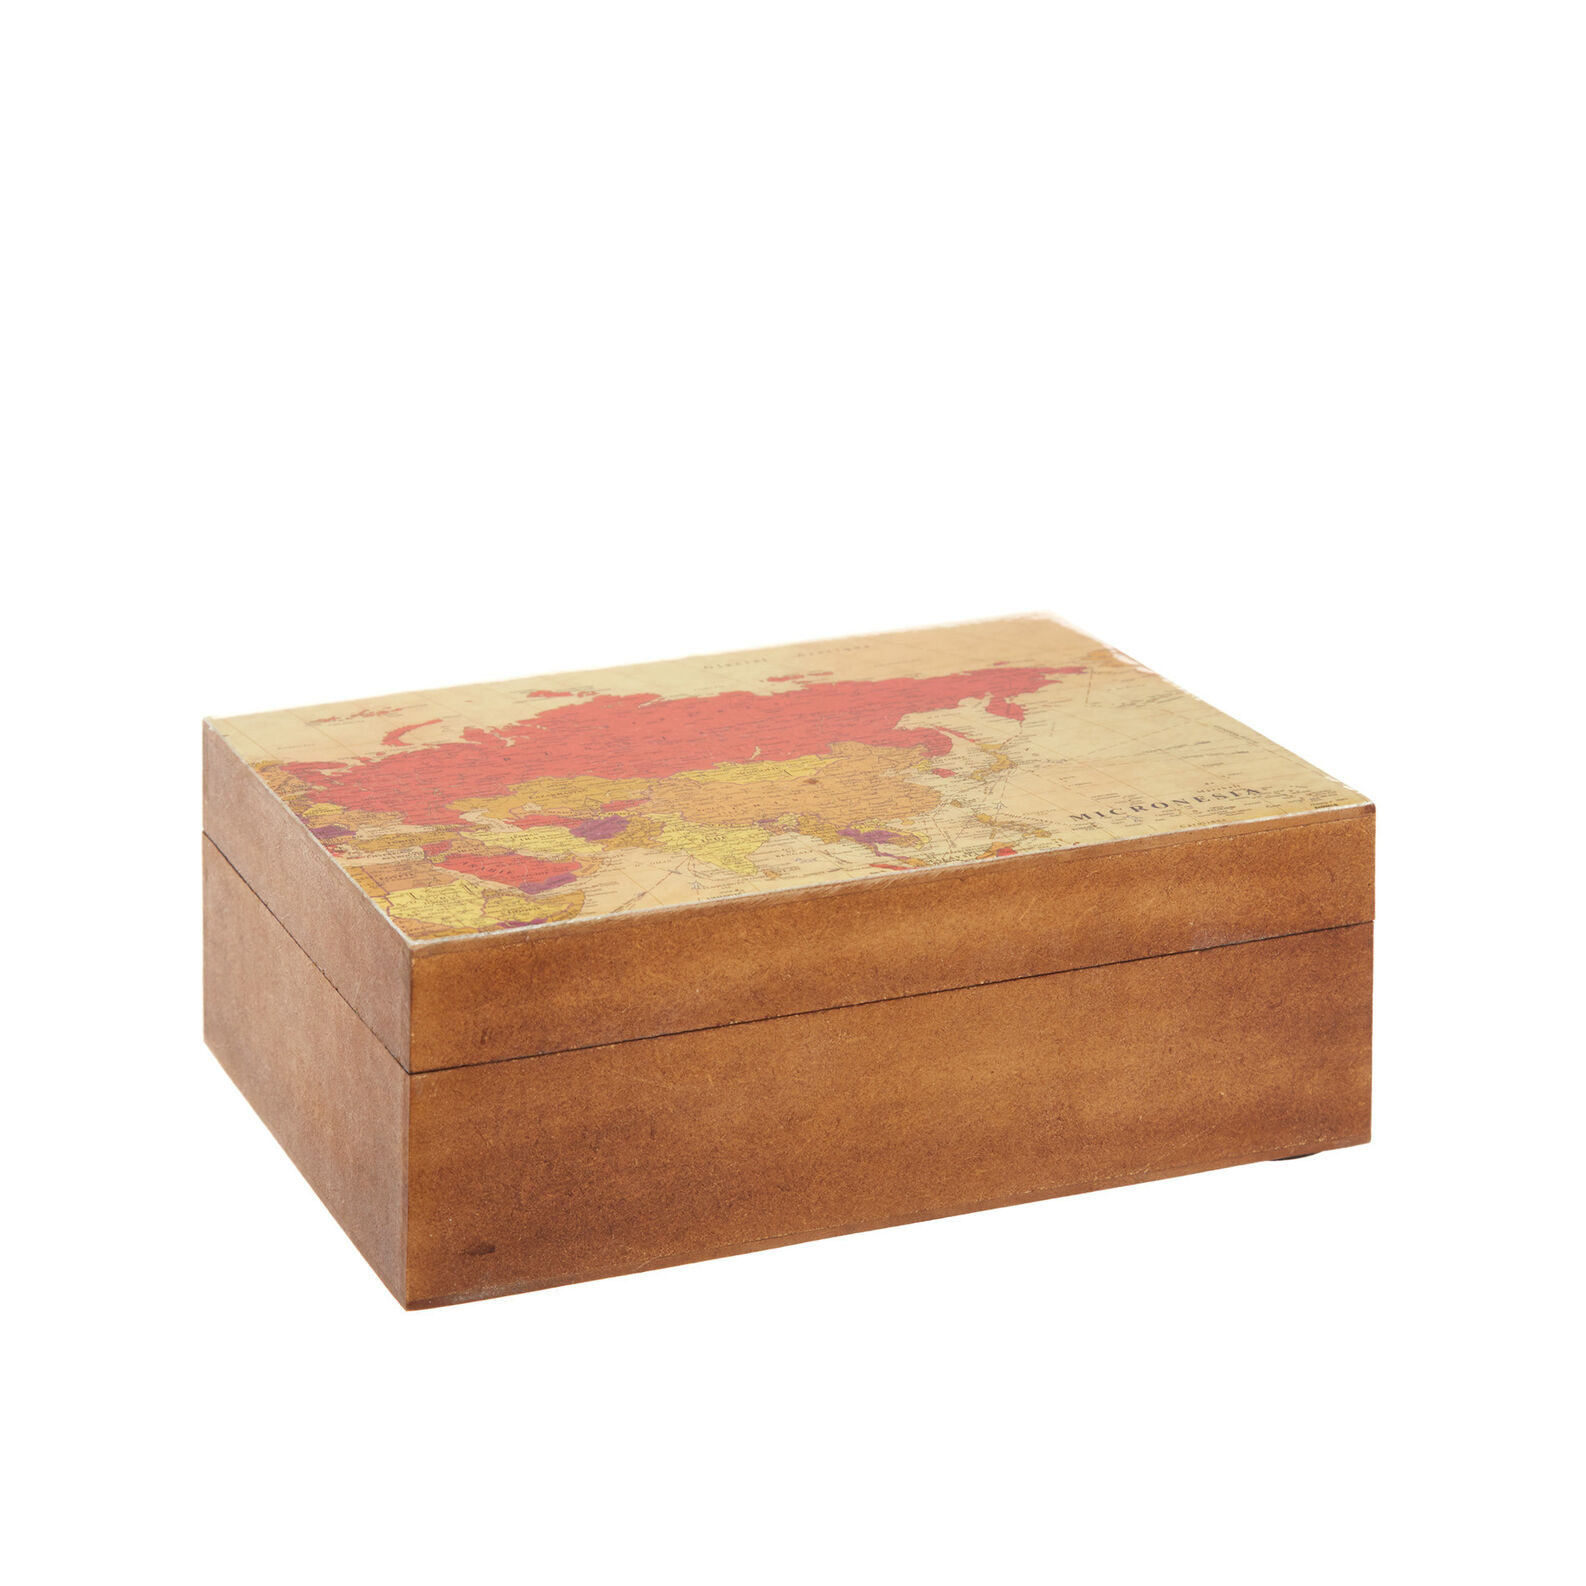 Vintage map motif box with lid